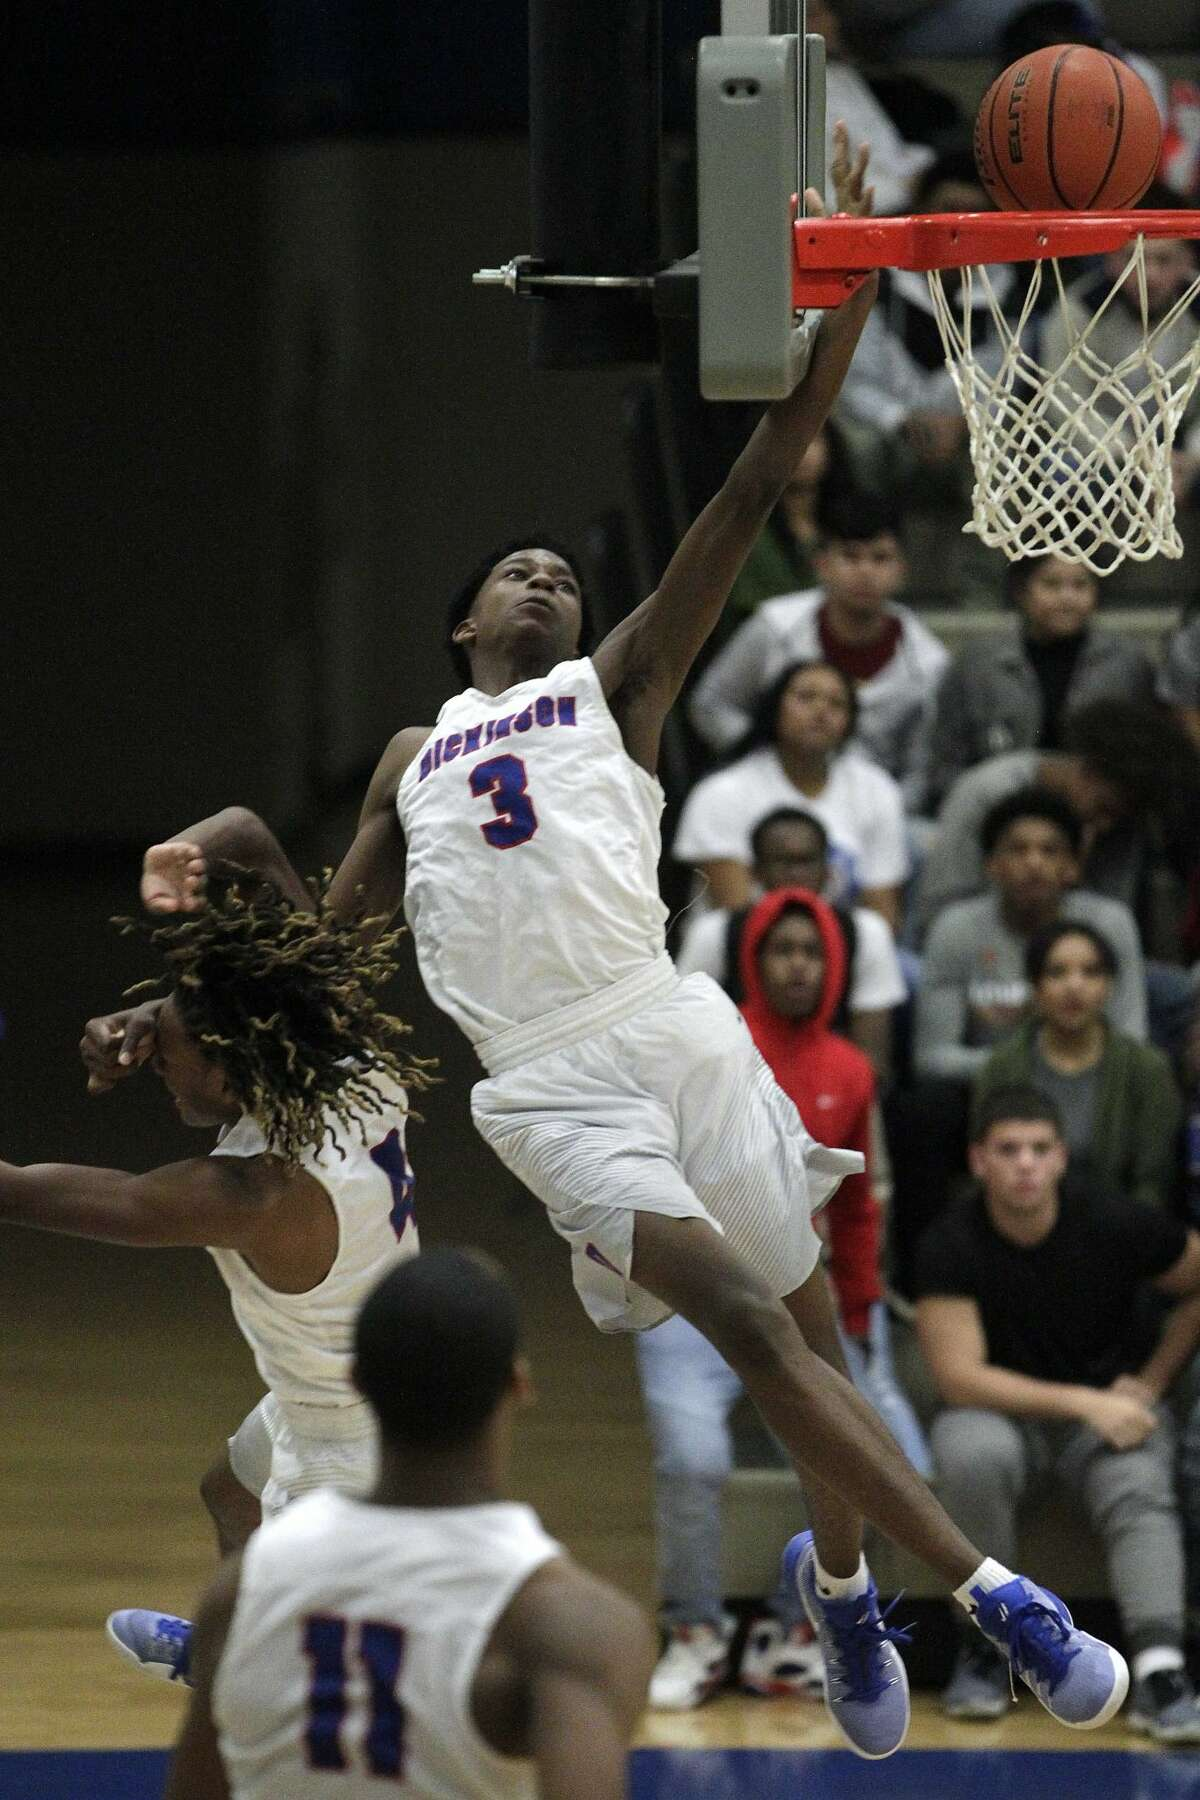 Dickinson's Tramon Mark attempts a dunk during a high school basketball game against Alvin on Friday, Feb. 3, 2017, in Dickinson. ( J. Patric Schneider / For the Chronicle )